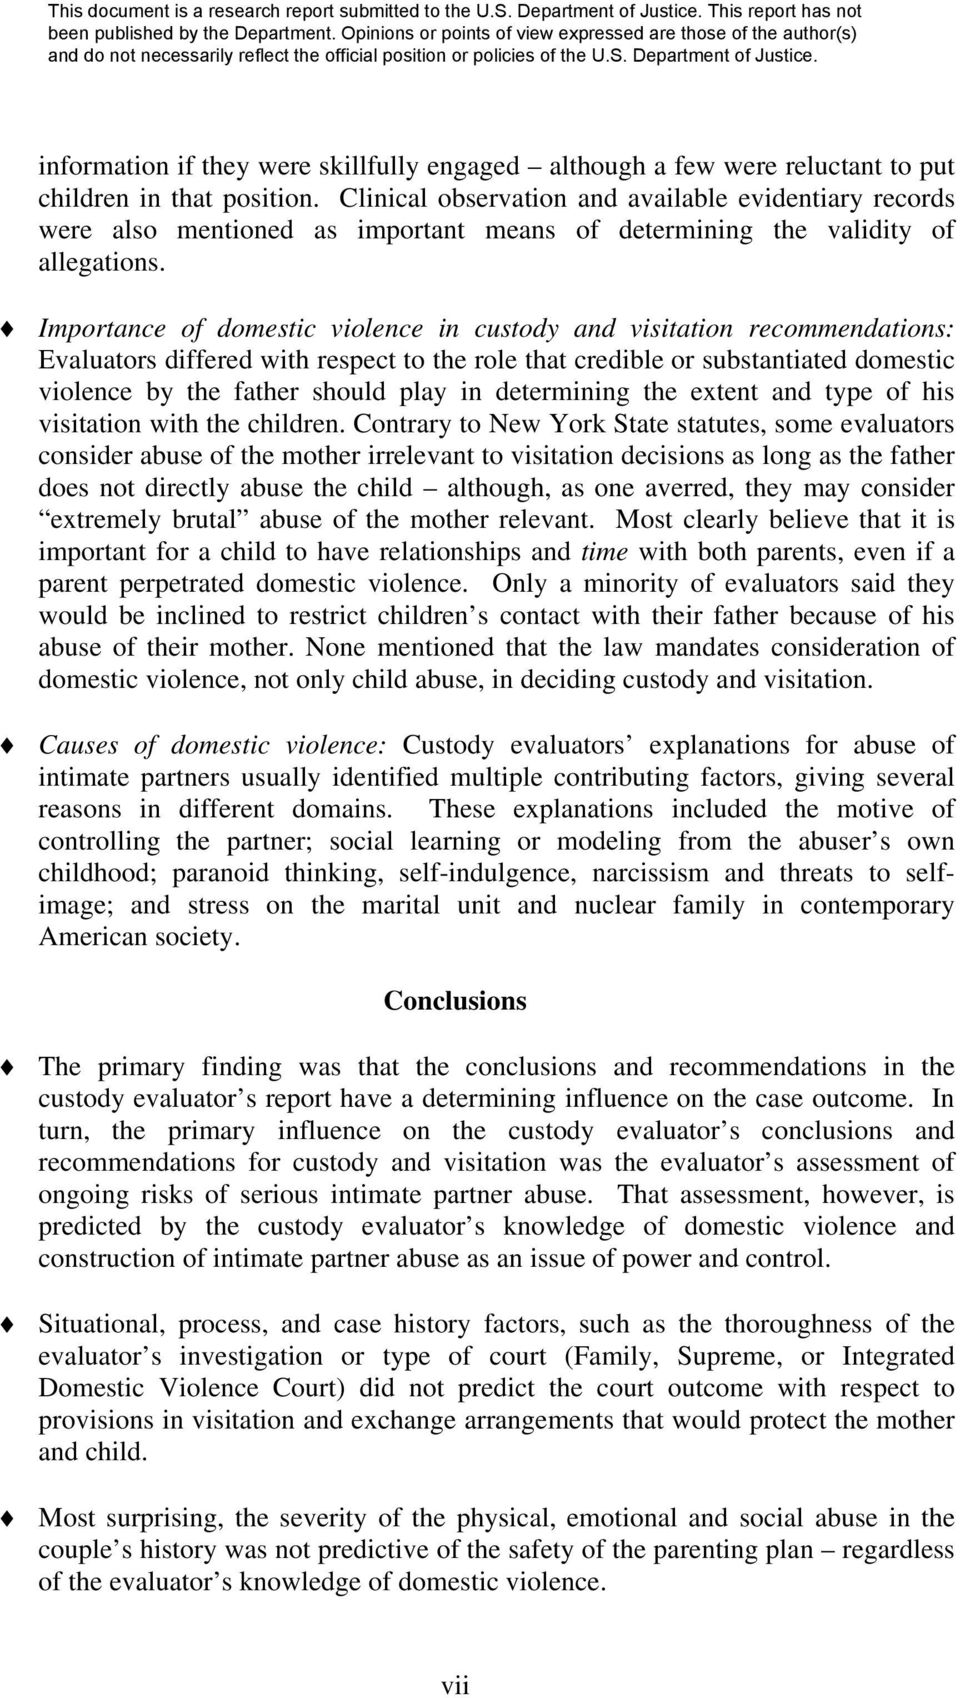 Importance of domestic violence in custody and visitation recommendations: Evaluators differed with respect to the role that credible or substantiated domestic violence by the father should play in